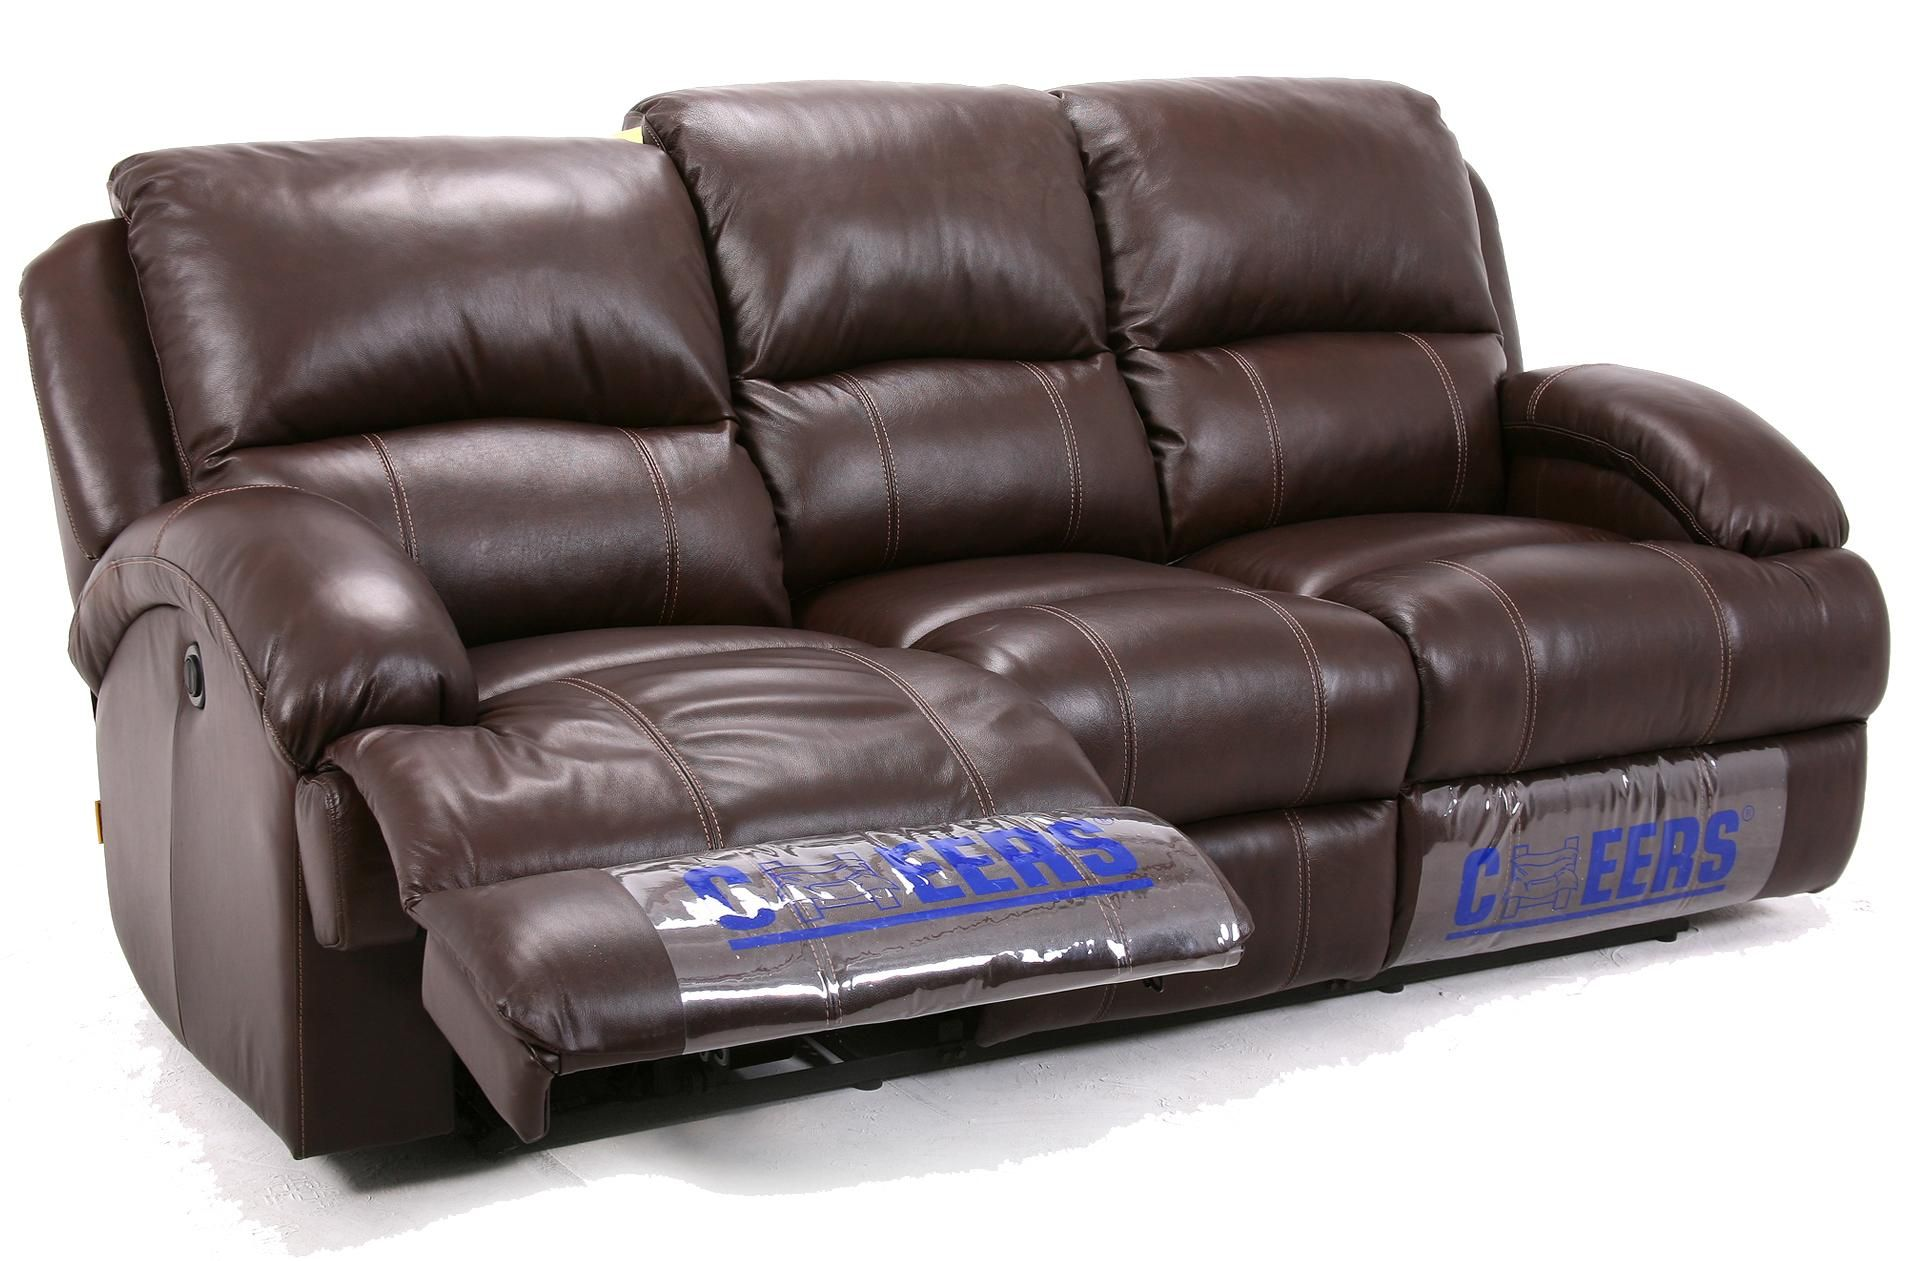 Miraculous Uxw8626M Power Reclining Sofa By Cheers Sofa Hudsons Caraccident5 Cool Chair Designs And Ideas Caraccident5Info